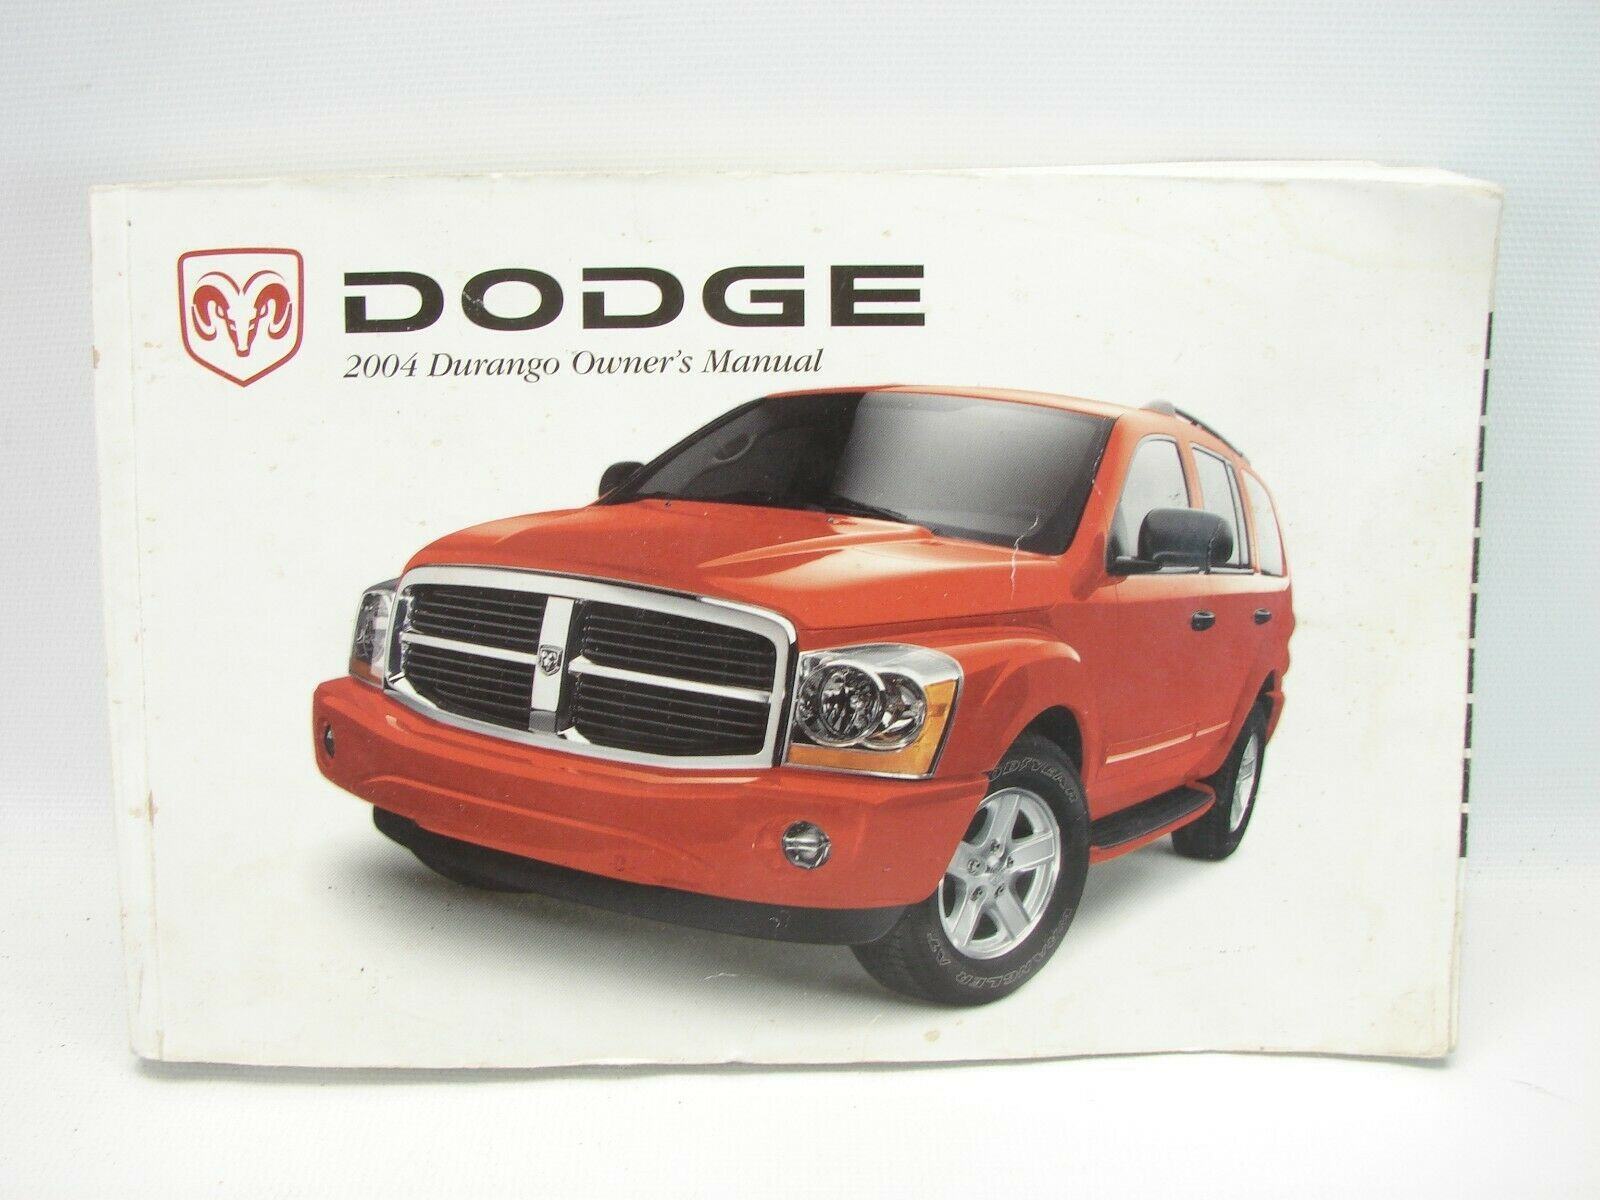 2004 Dodge Durango Owner's Manual (T85)